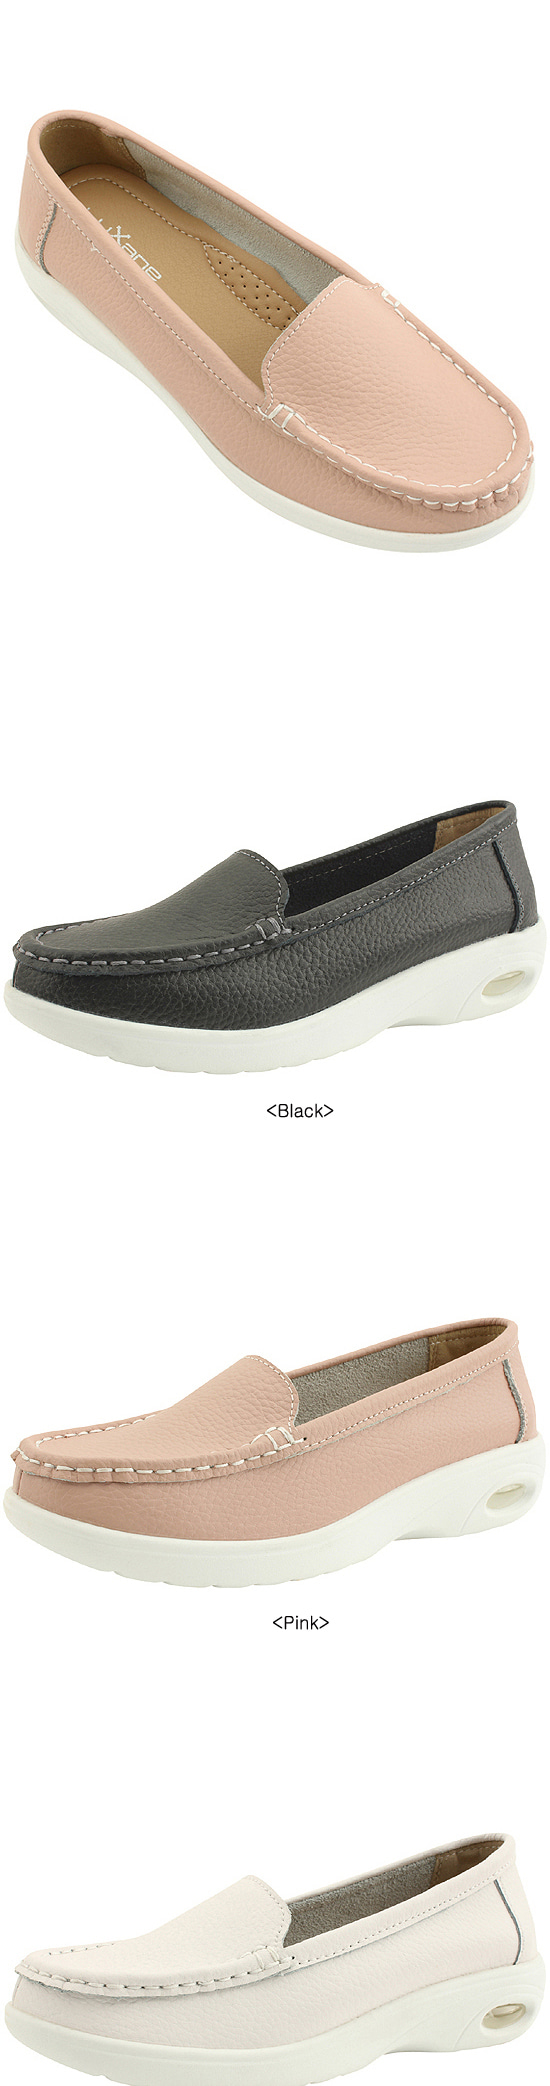 Cowhide Comfort Cushion Whole Heel Loafers Black